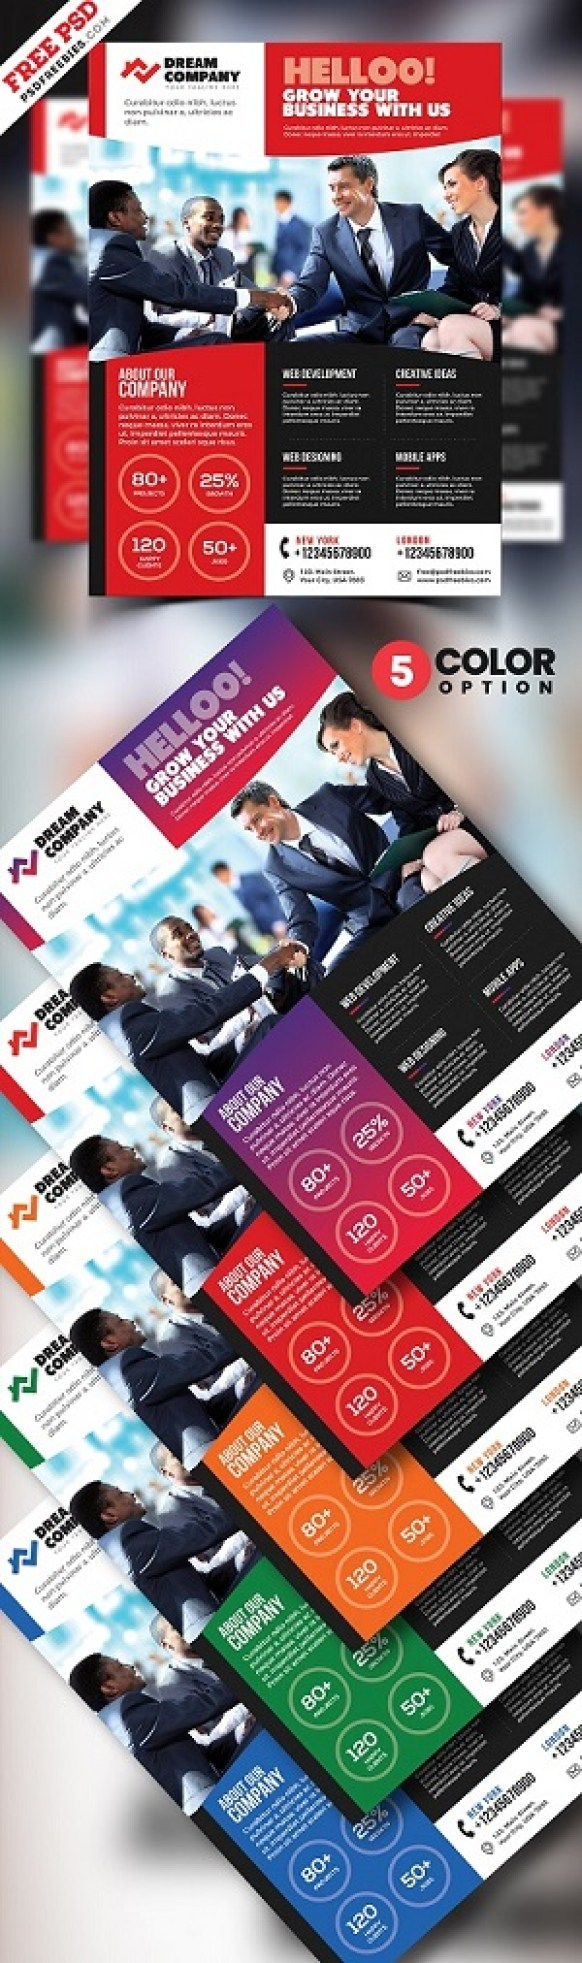 Promotional Flyer Templates Free PSD